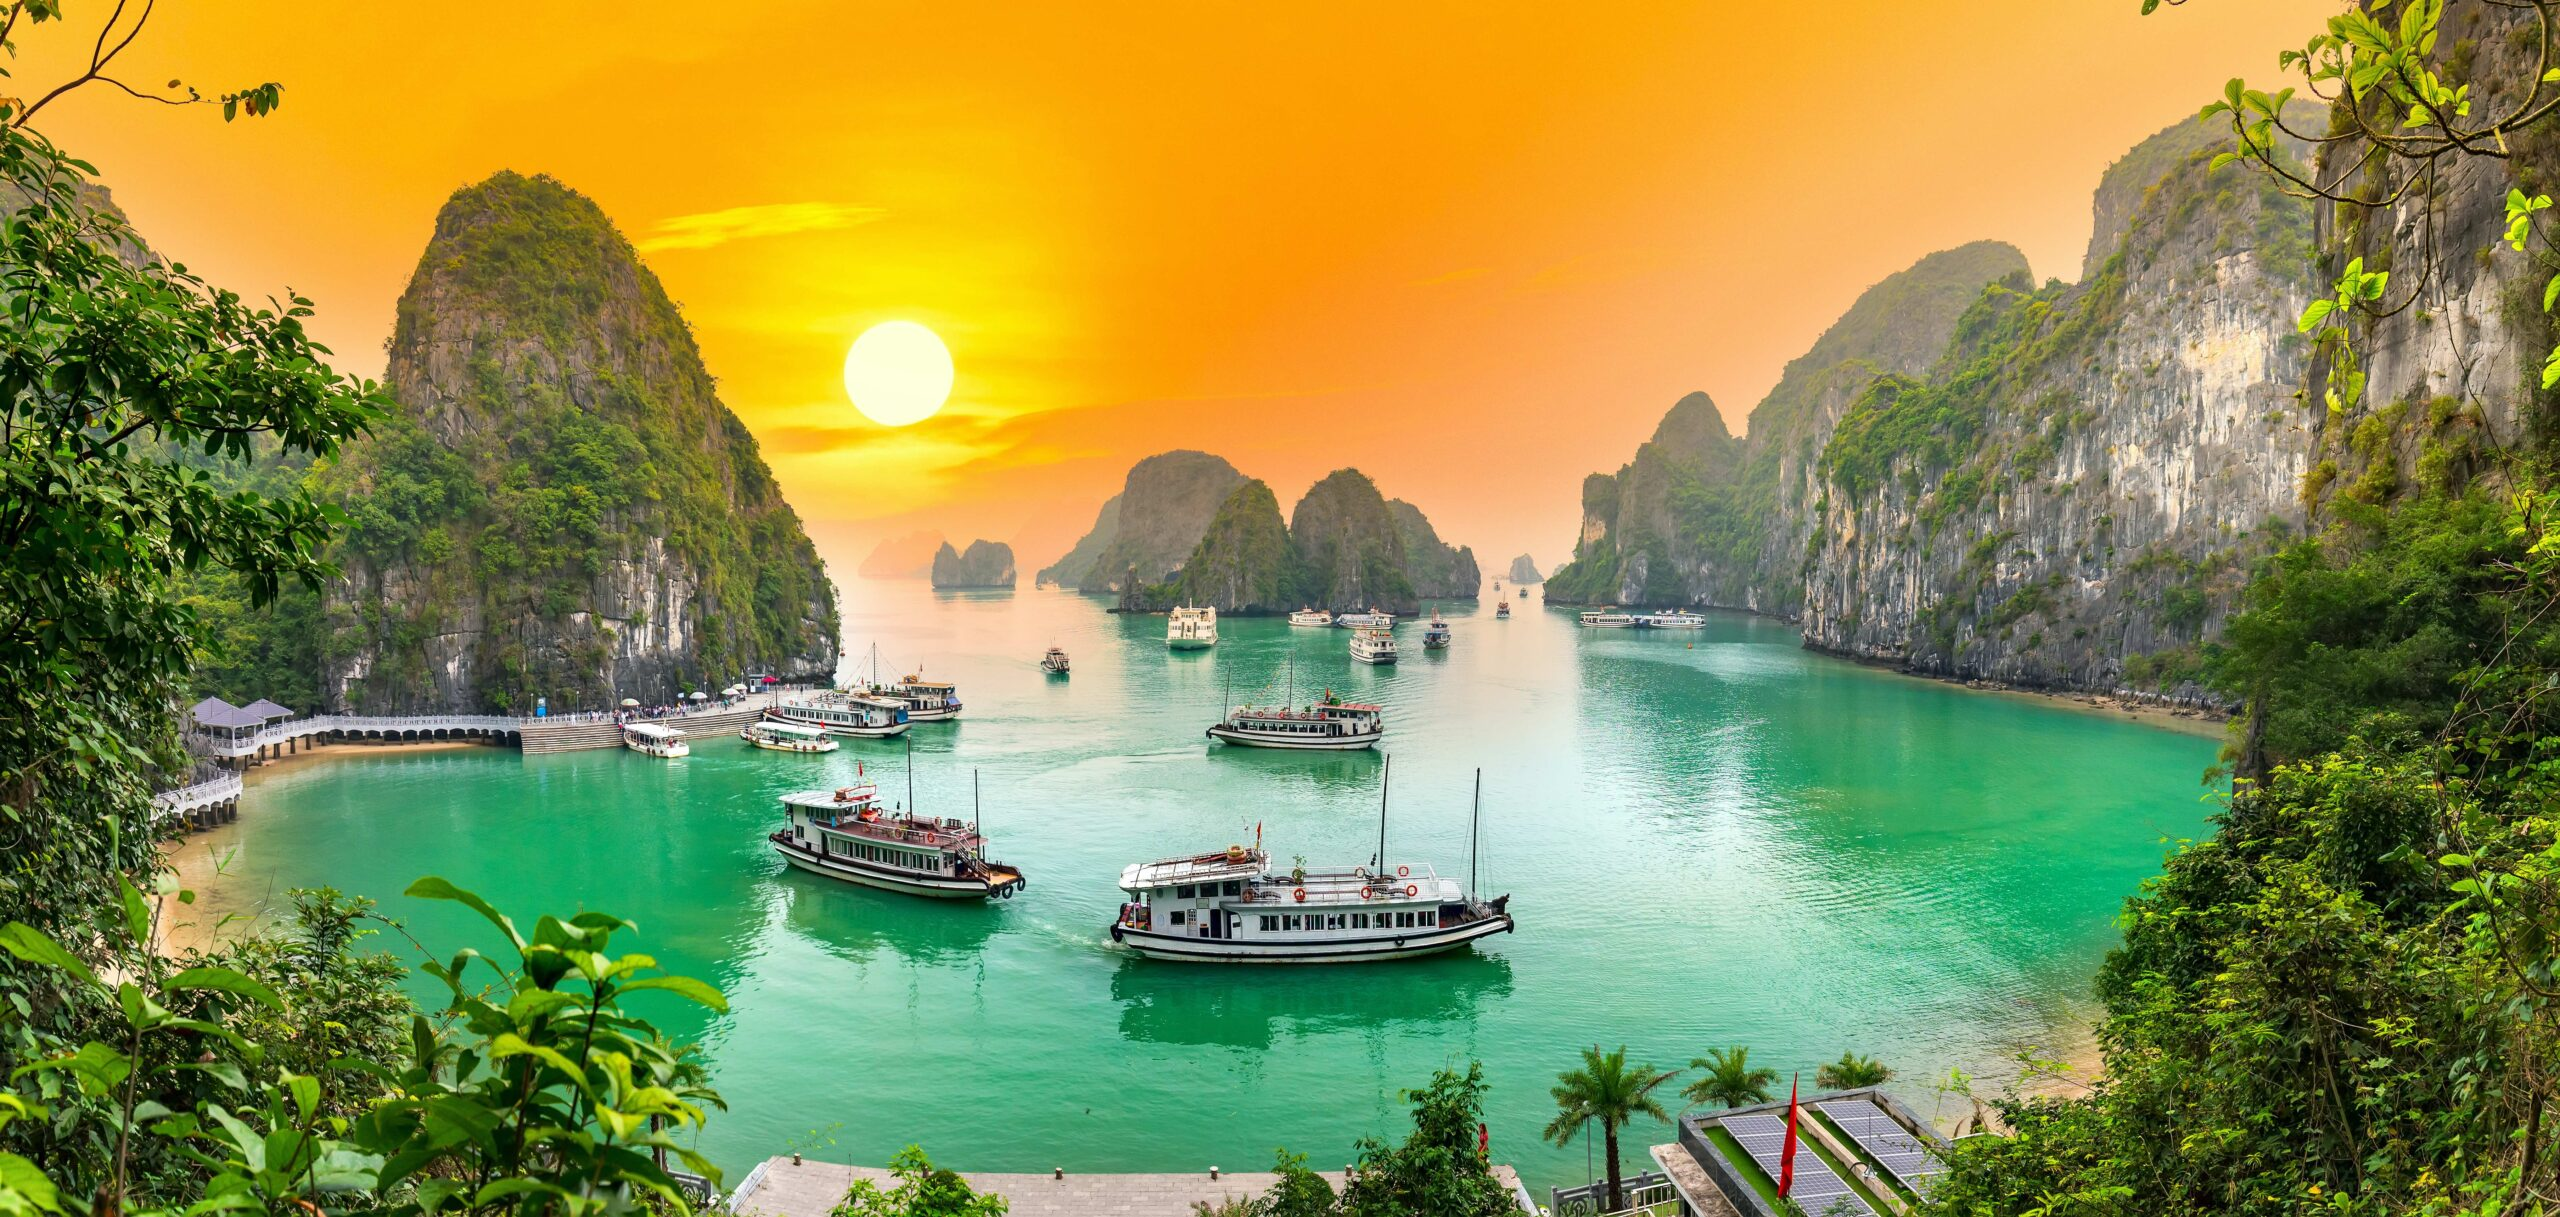 Halong Bay, Vietnam view from adove